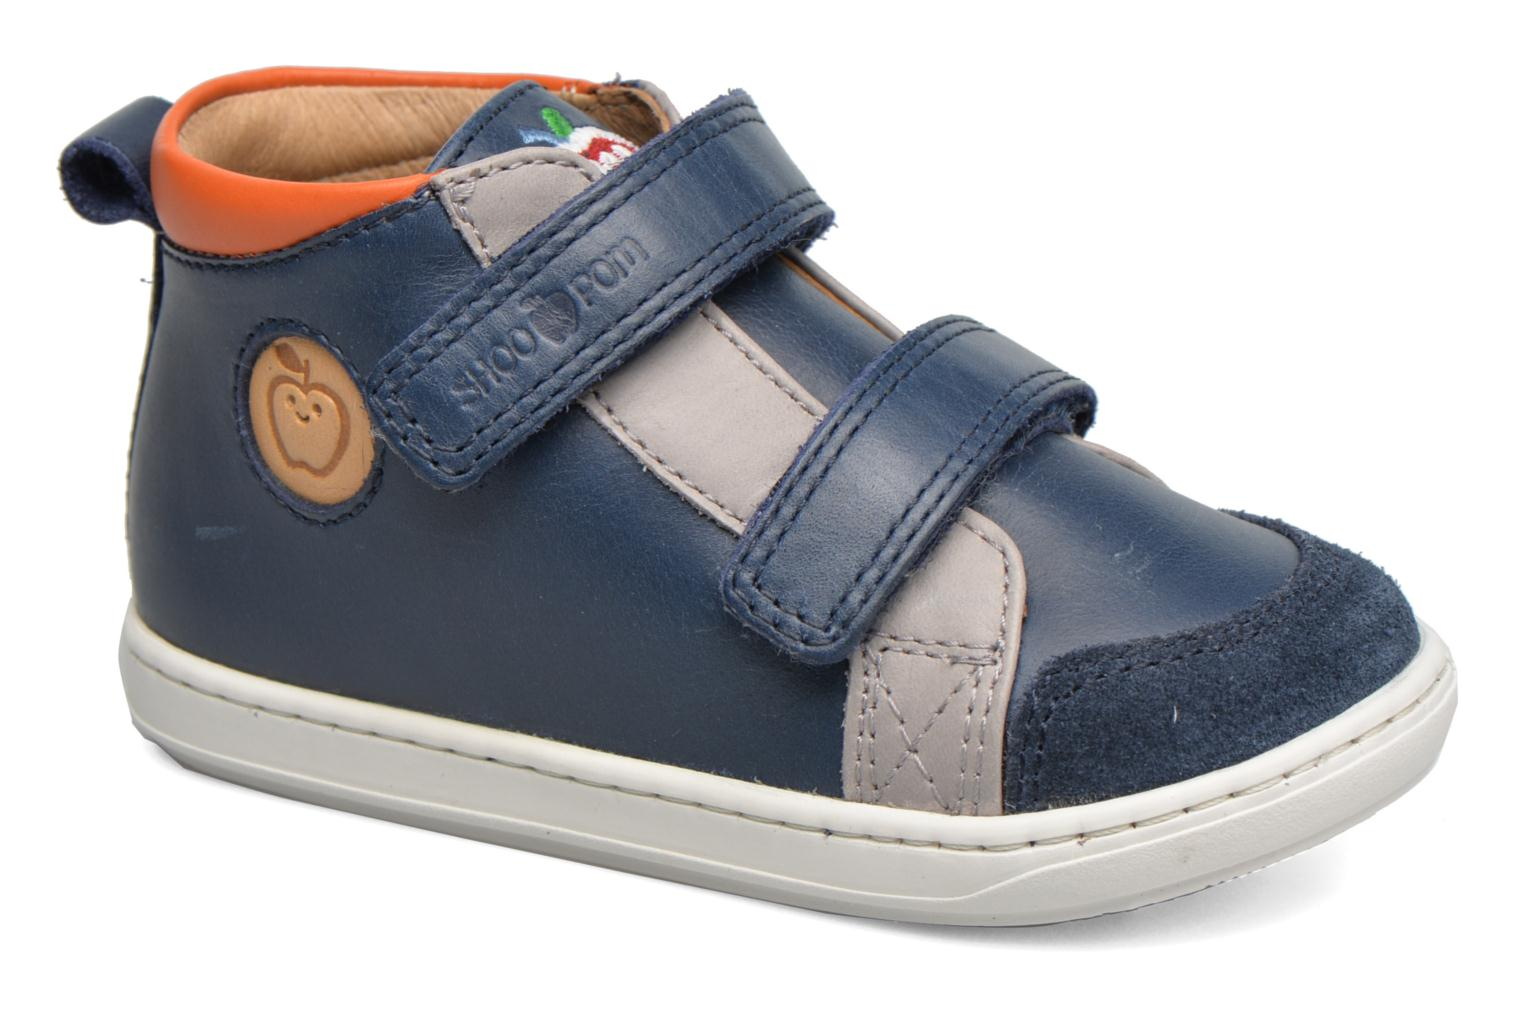 Bouba New Scratch Navy-Grey-orange